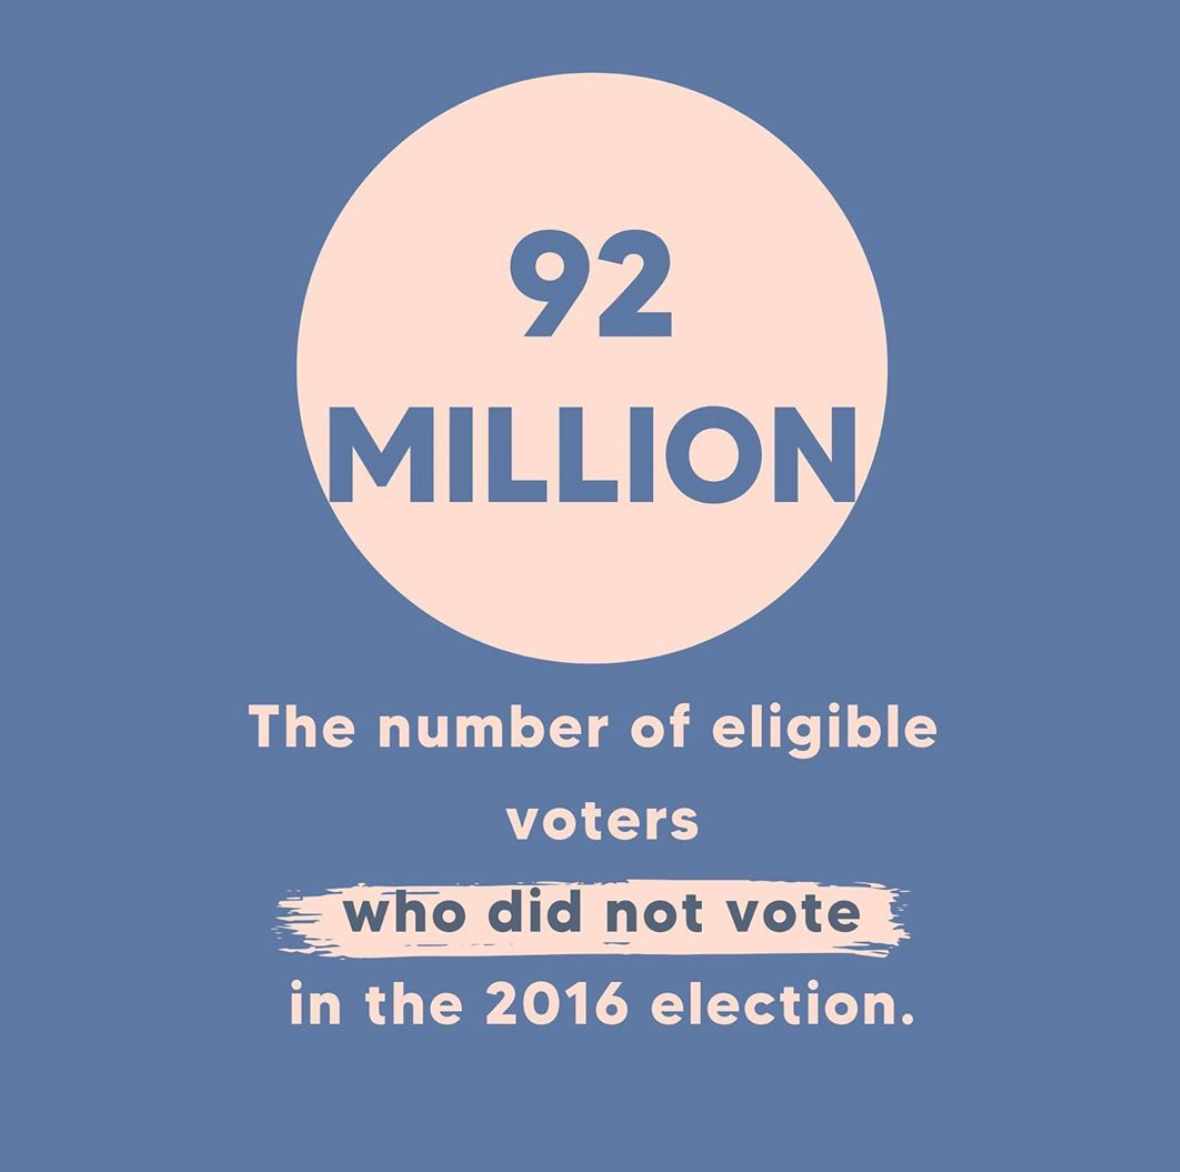 92 million eligible voters did not vote in the 2016 election